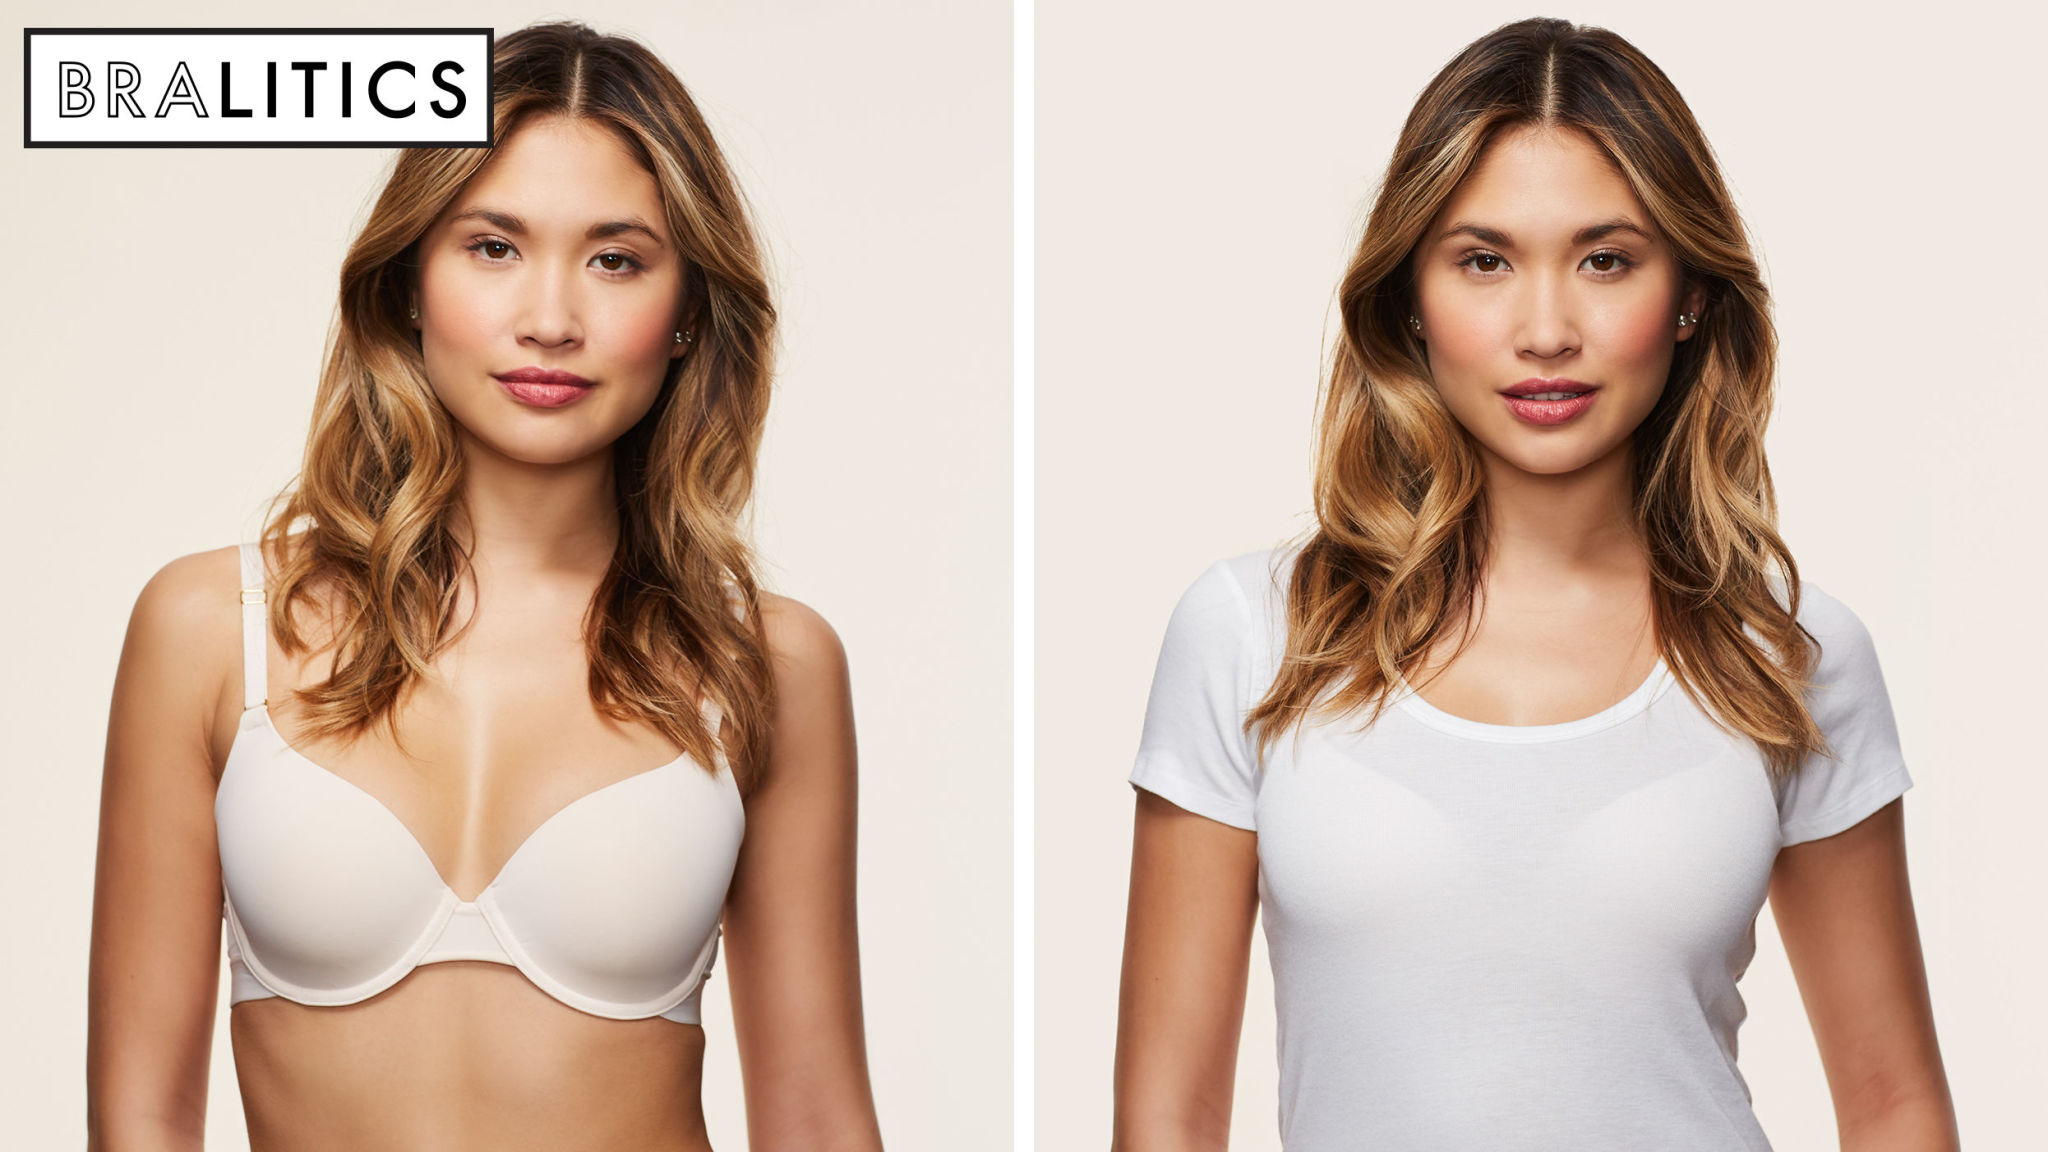 11 Best T Shirt Bras - Find the Top T-Shirt Bra for Your Shape